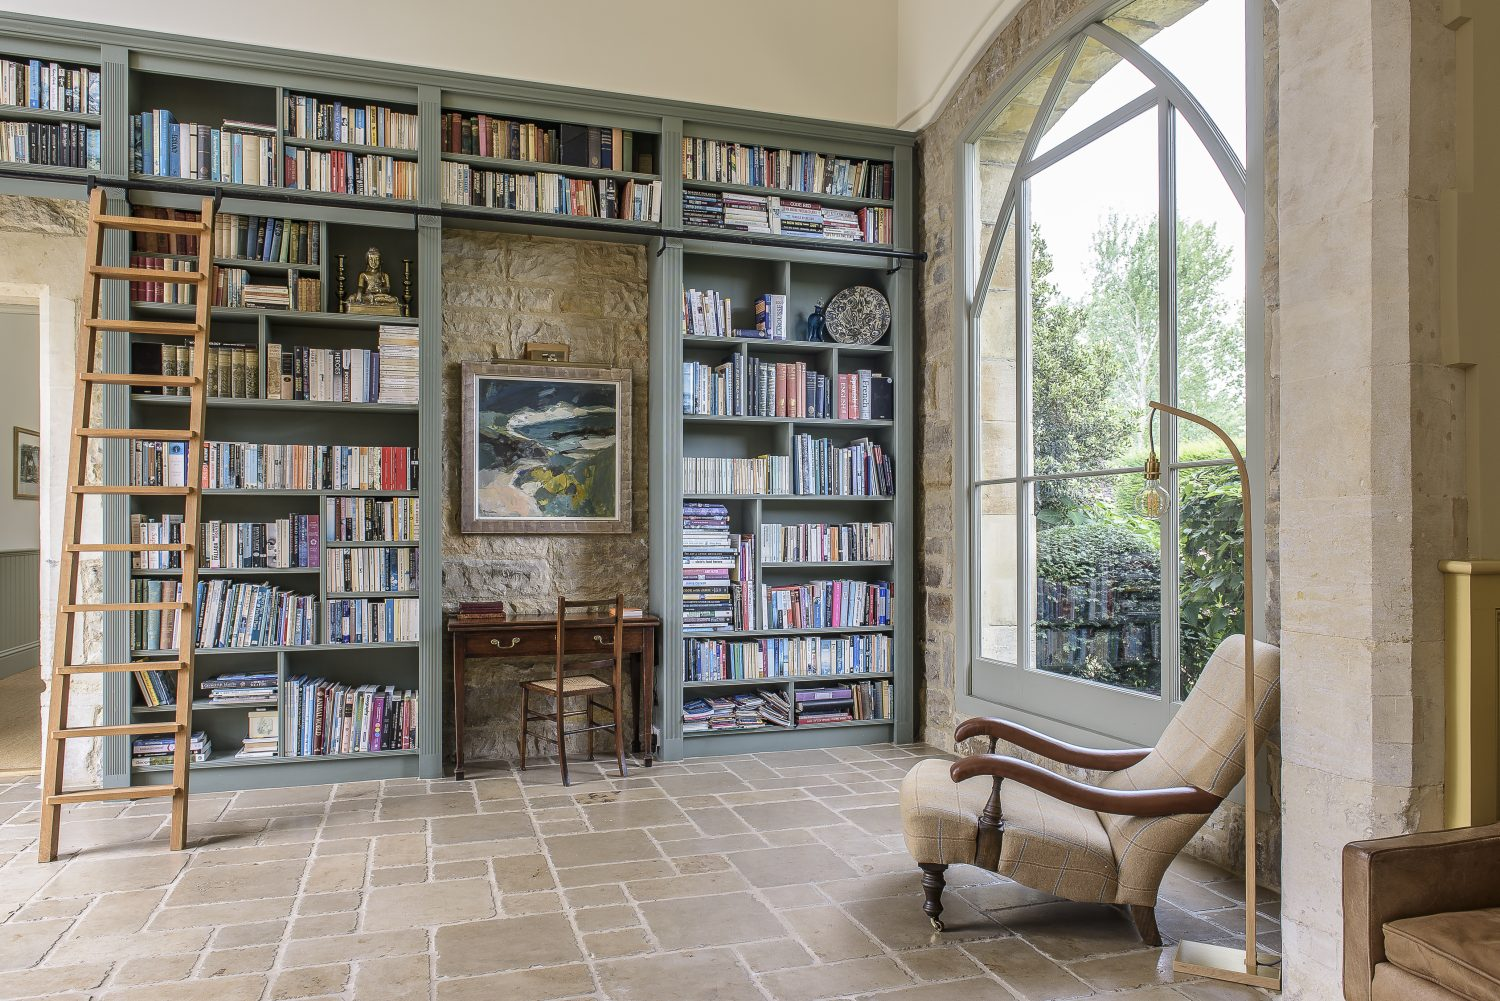 Floor-to-ceiling bookcases offer the perfect opportunity for guests to select a book to curl up with in front of the fire in the room next door